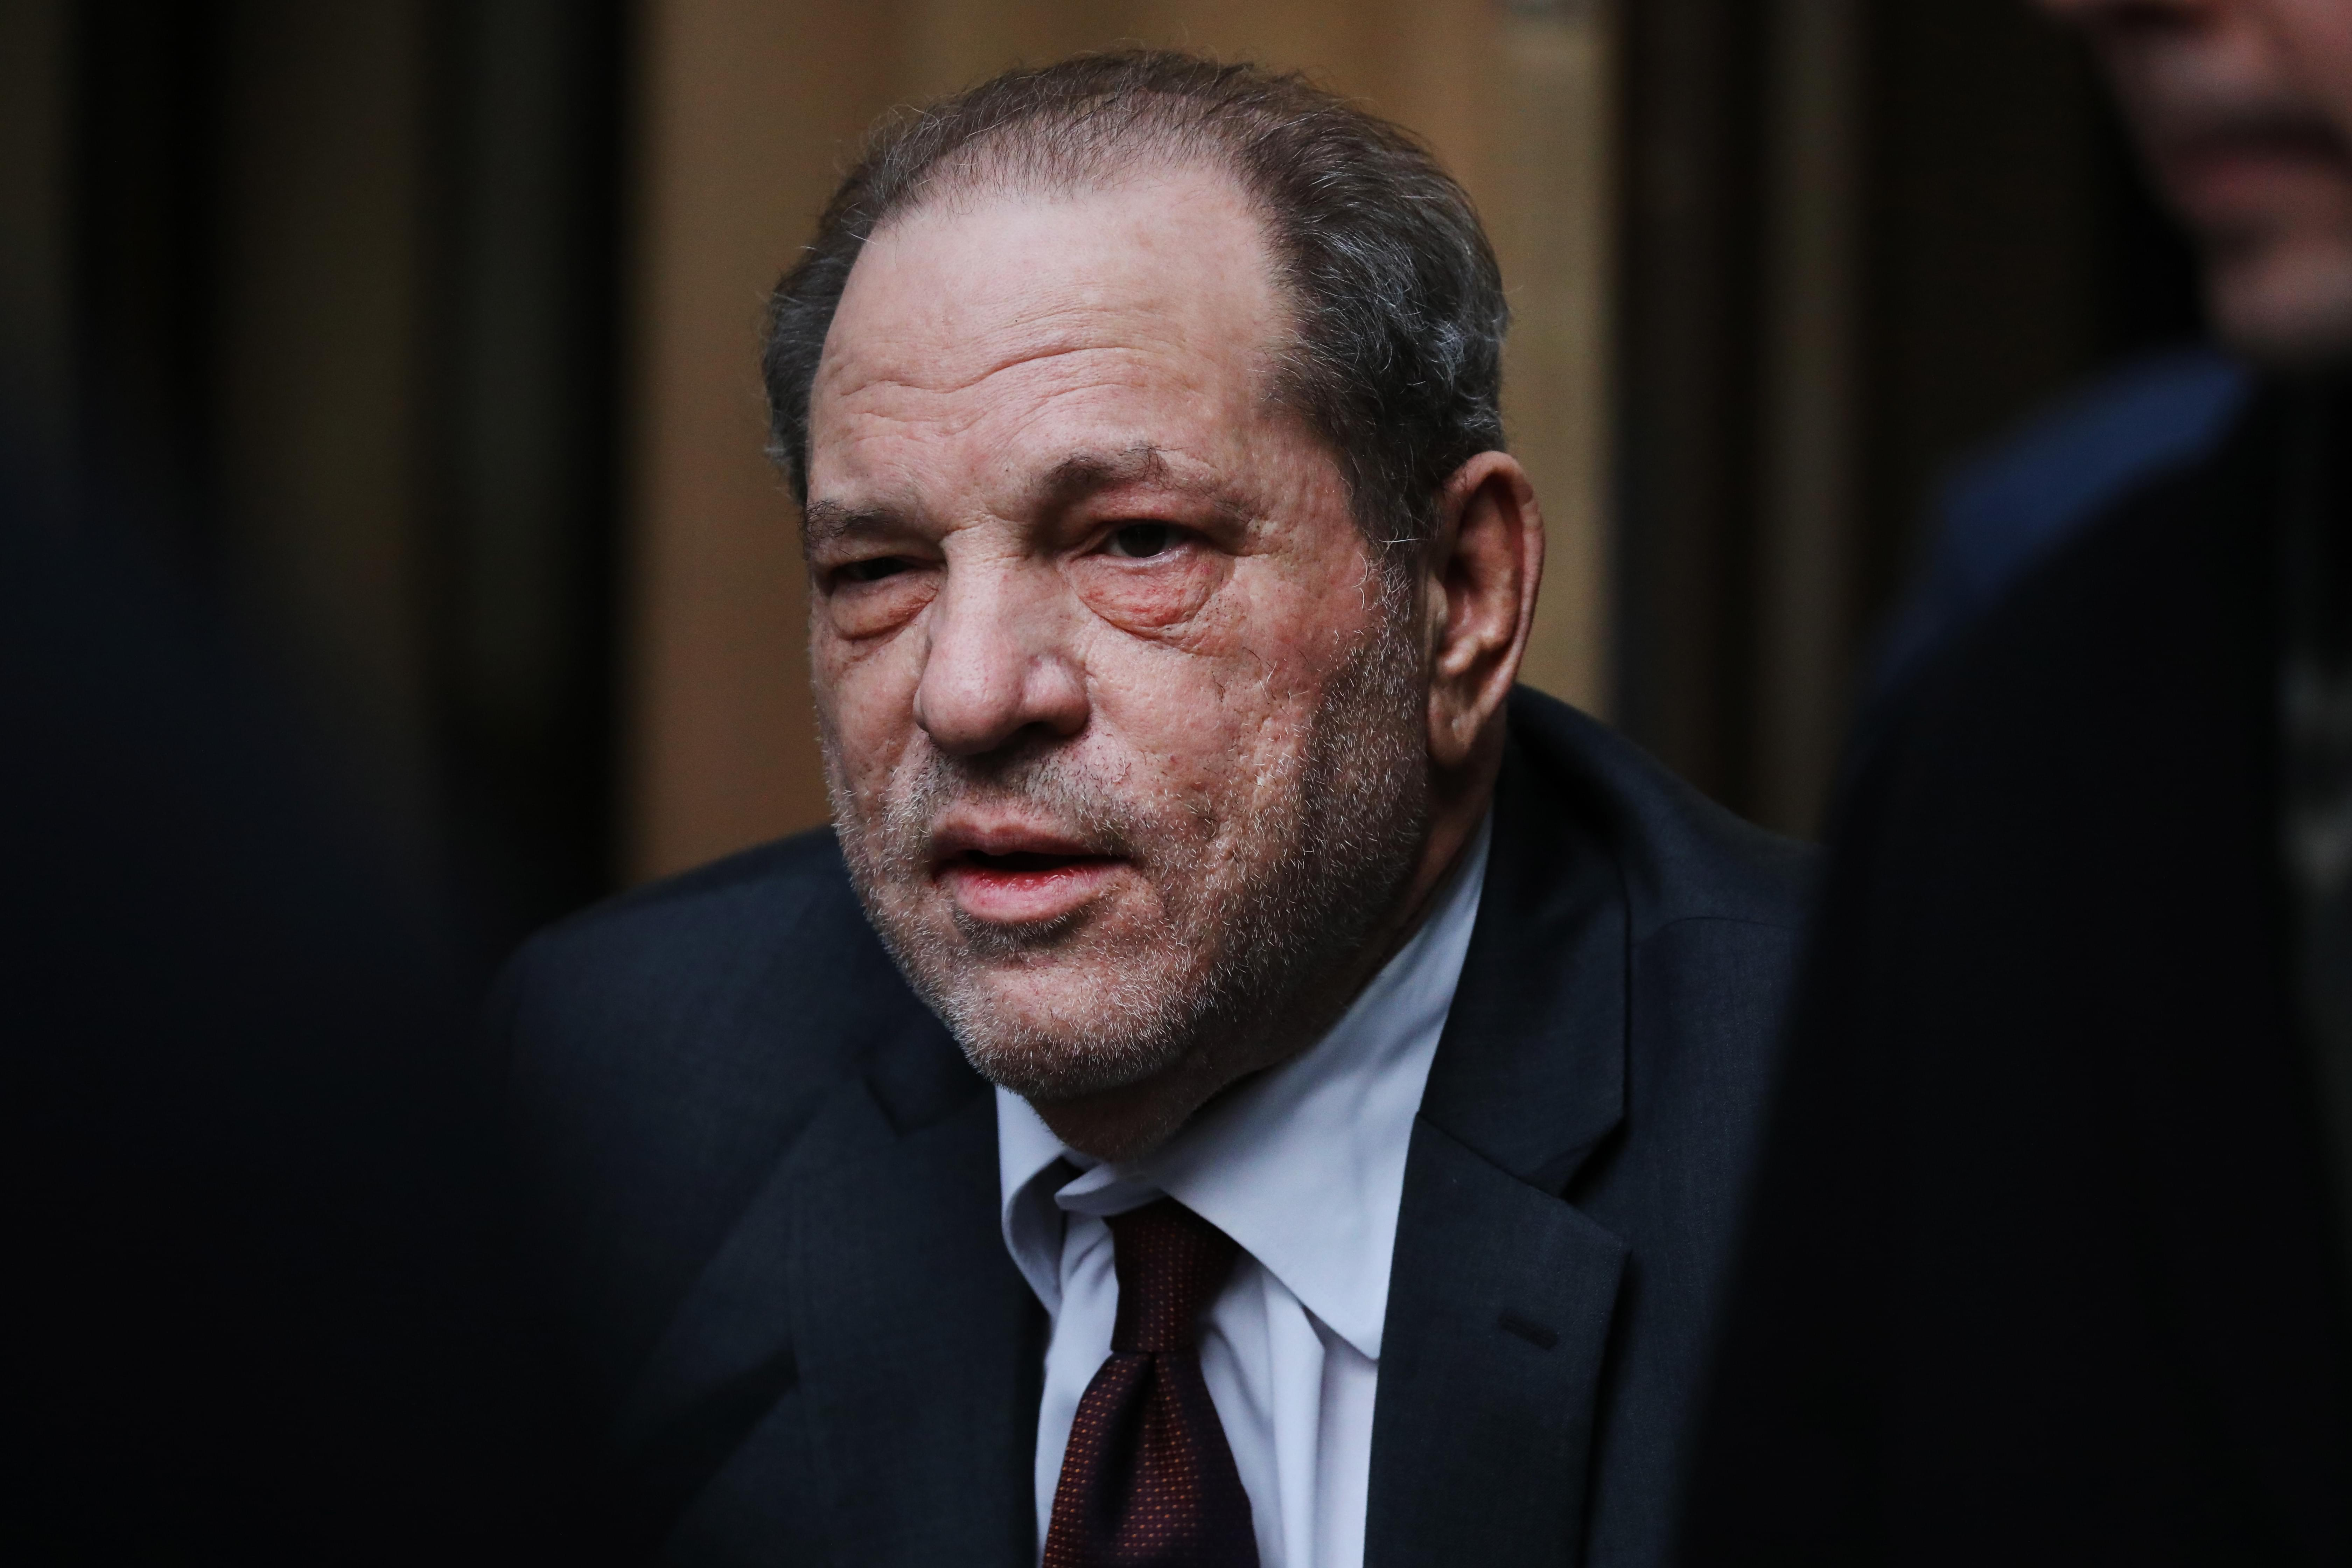 Harvey Weinstein Sentenced To 23 Years In Prison For Sexual Convictions